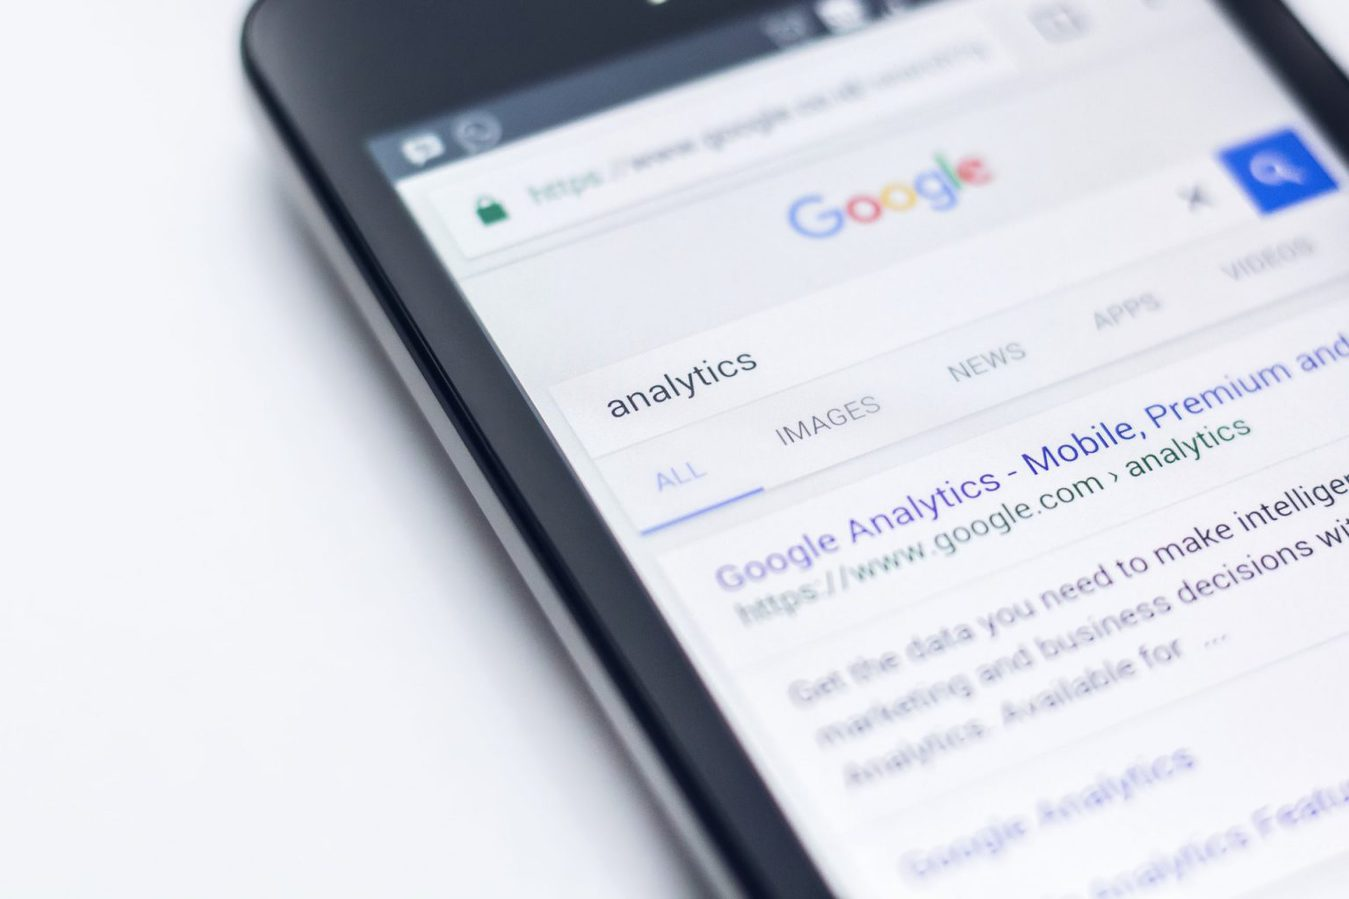 A mobile phone showing search results for a search on analytics